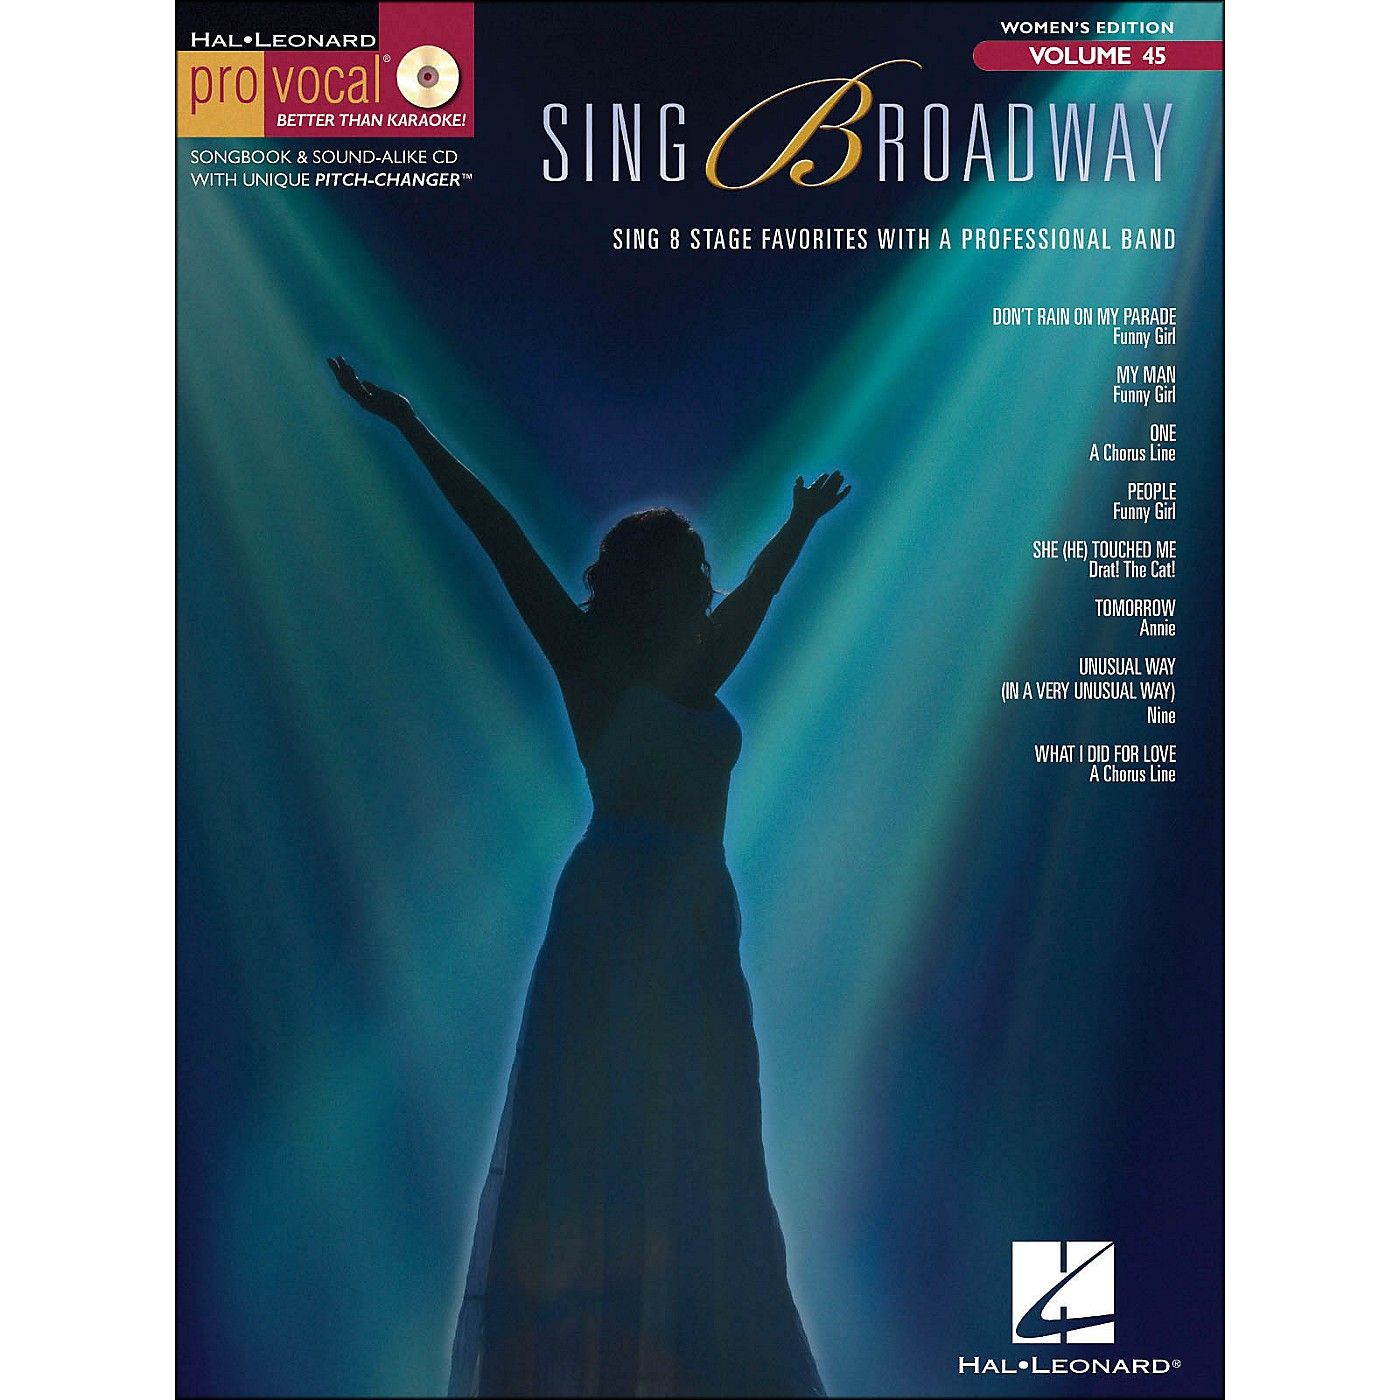 Hal Leonard Sing Broadway - Pro Vocal Songbook & CD for Female Singers Volume 45 thumbnail